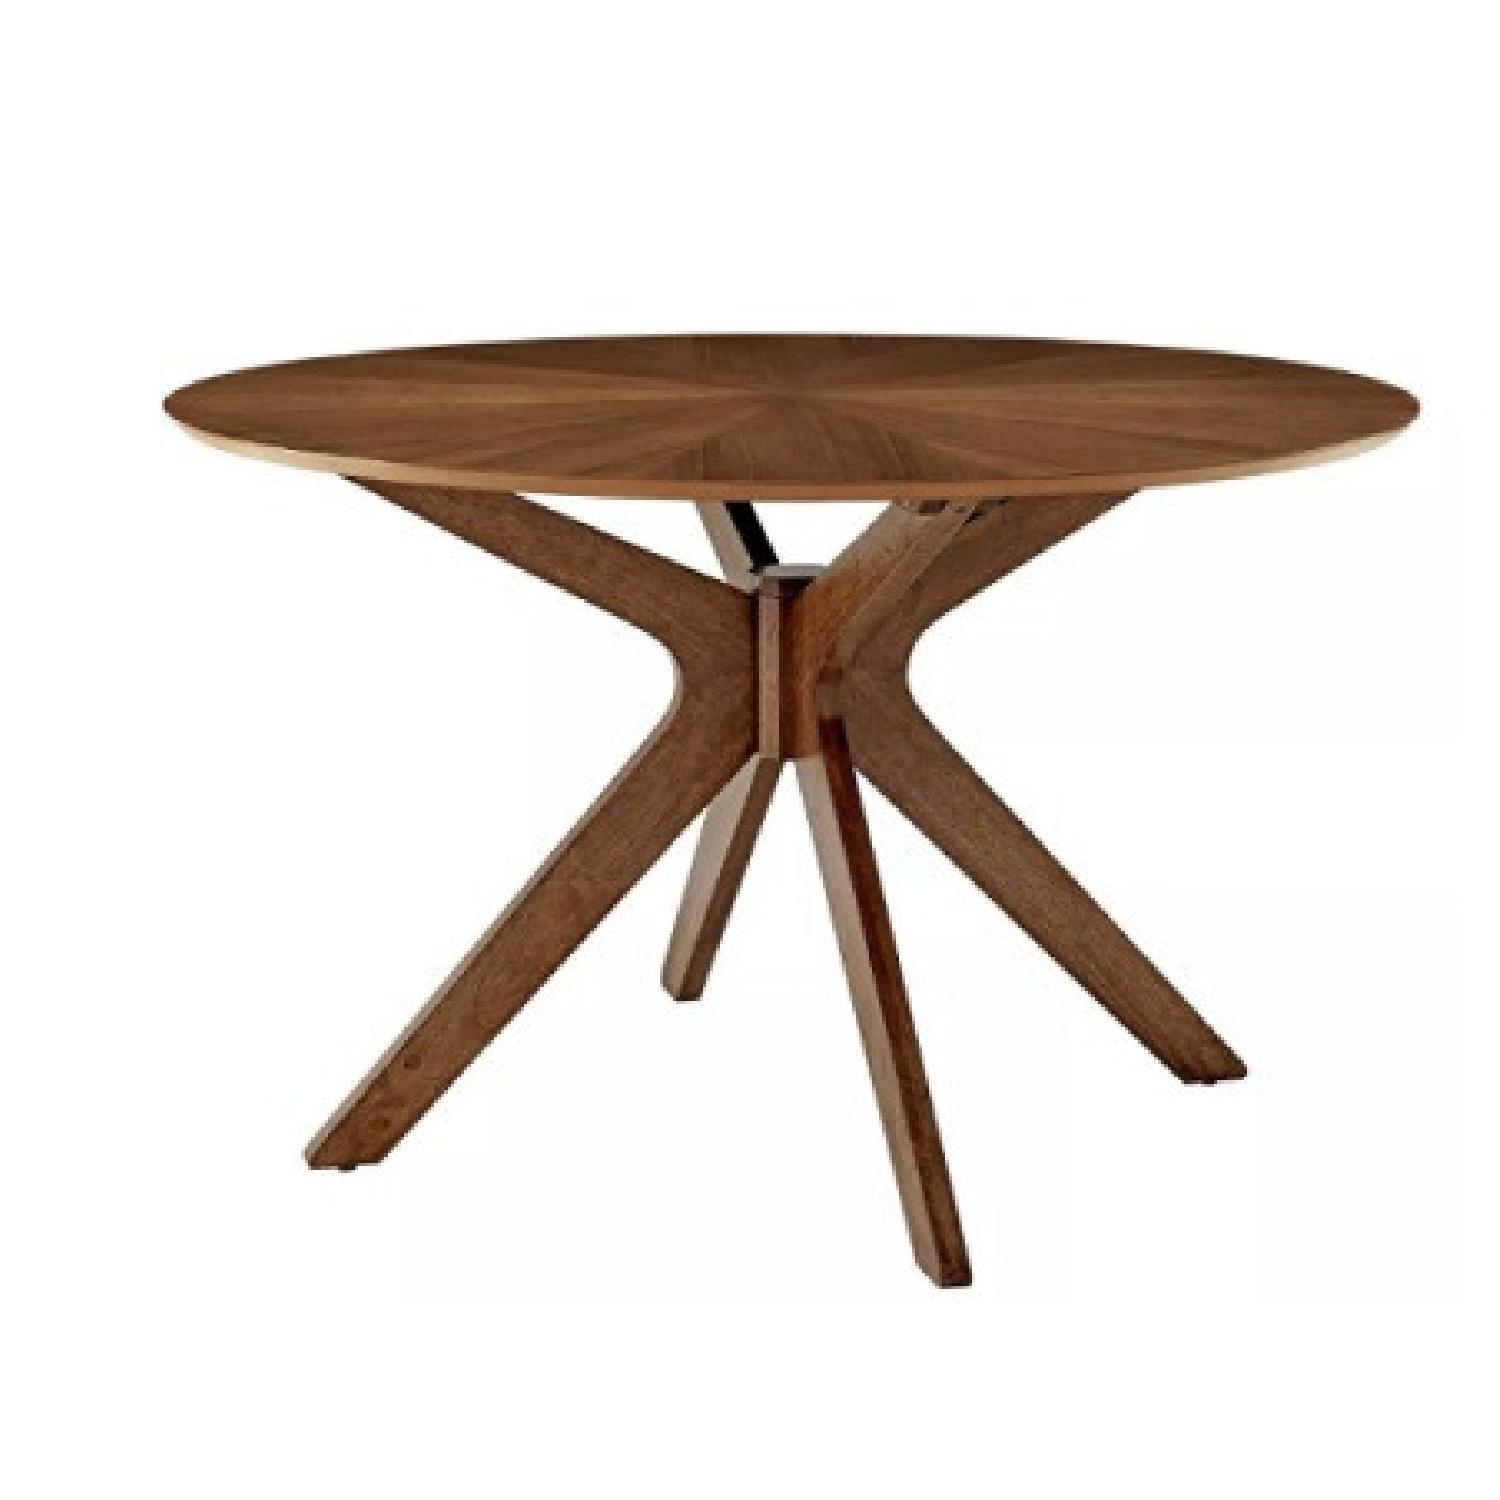 Modway Pedestal 47 Dining Table in Walnut - image-4